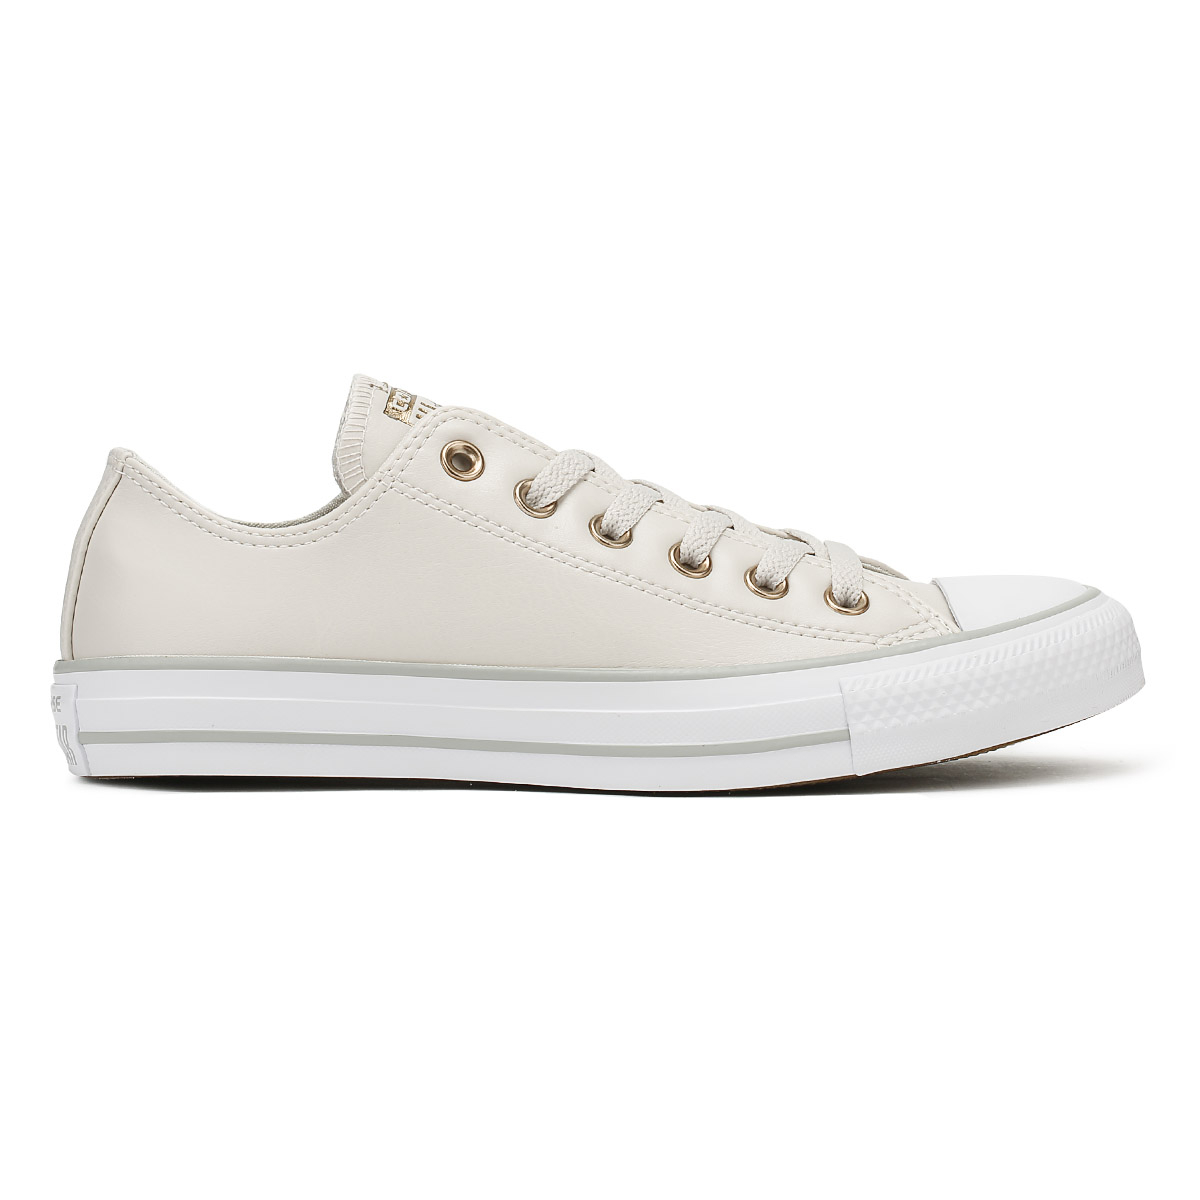 Converse Chuck Taylor All Star Putty Womens Ox Trainers Pale Putty Star Yellow Shoes c1efab